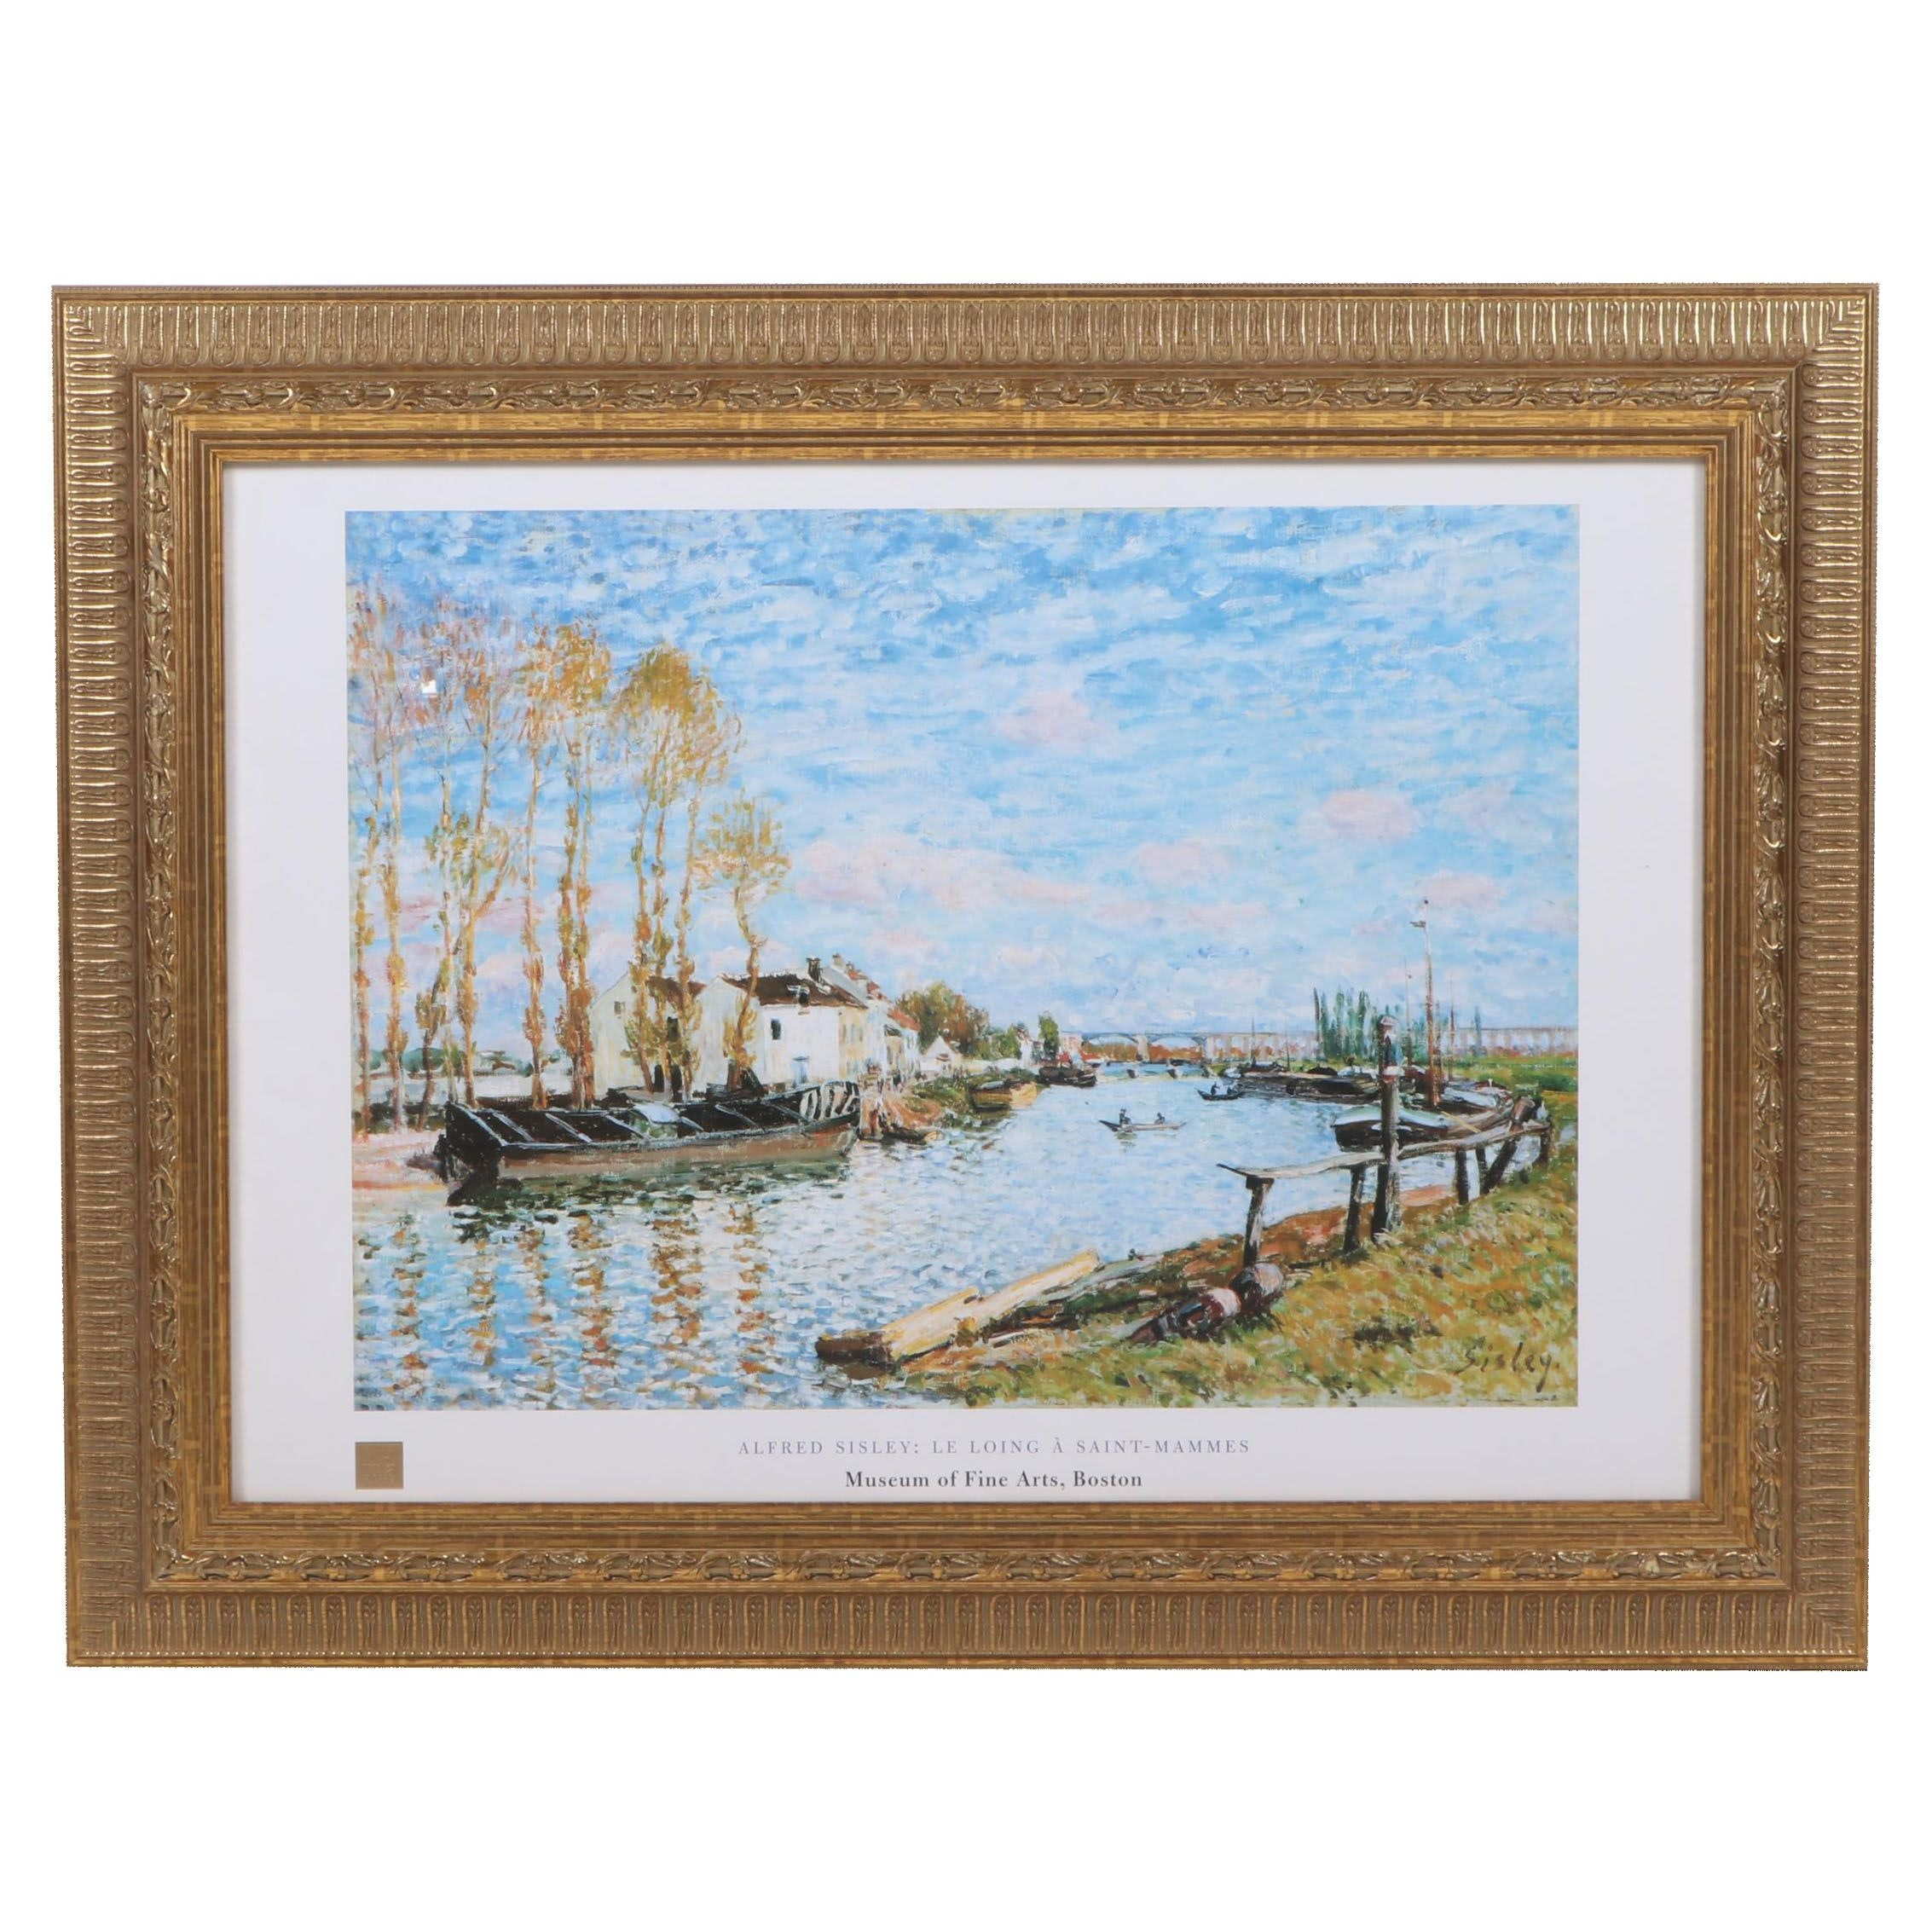 """Offset Lithograph after Alfred Sisley """"Le Loing A Saint-Mammes"""" Museum Poster"""